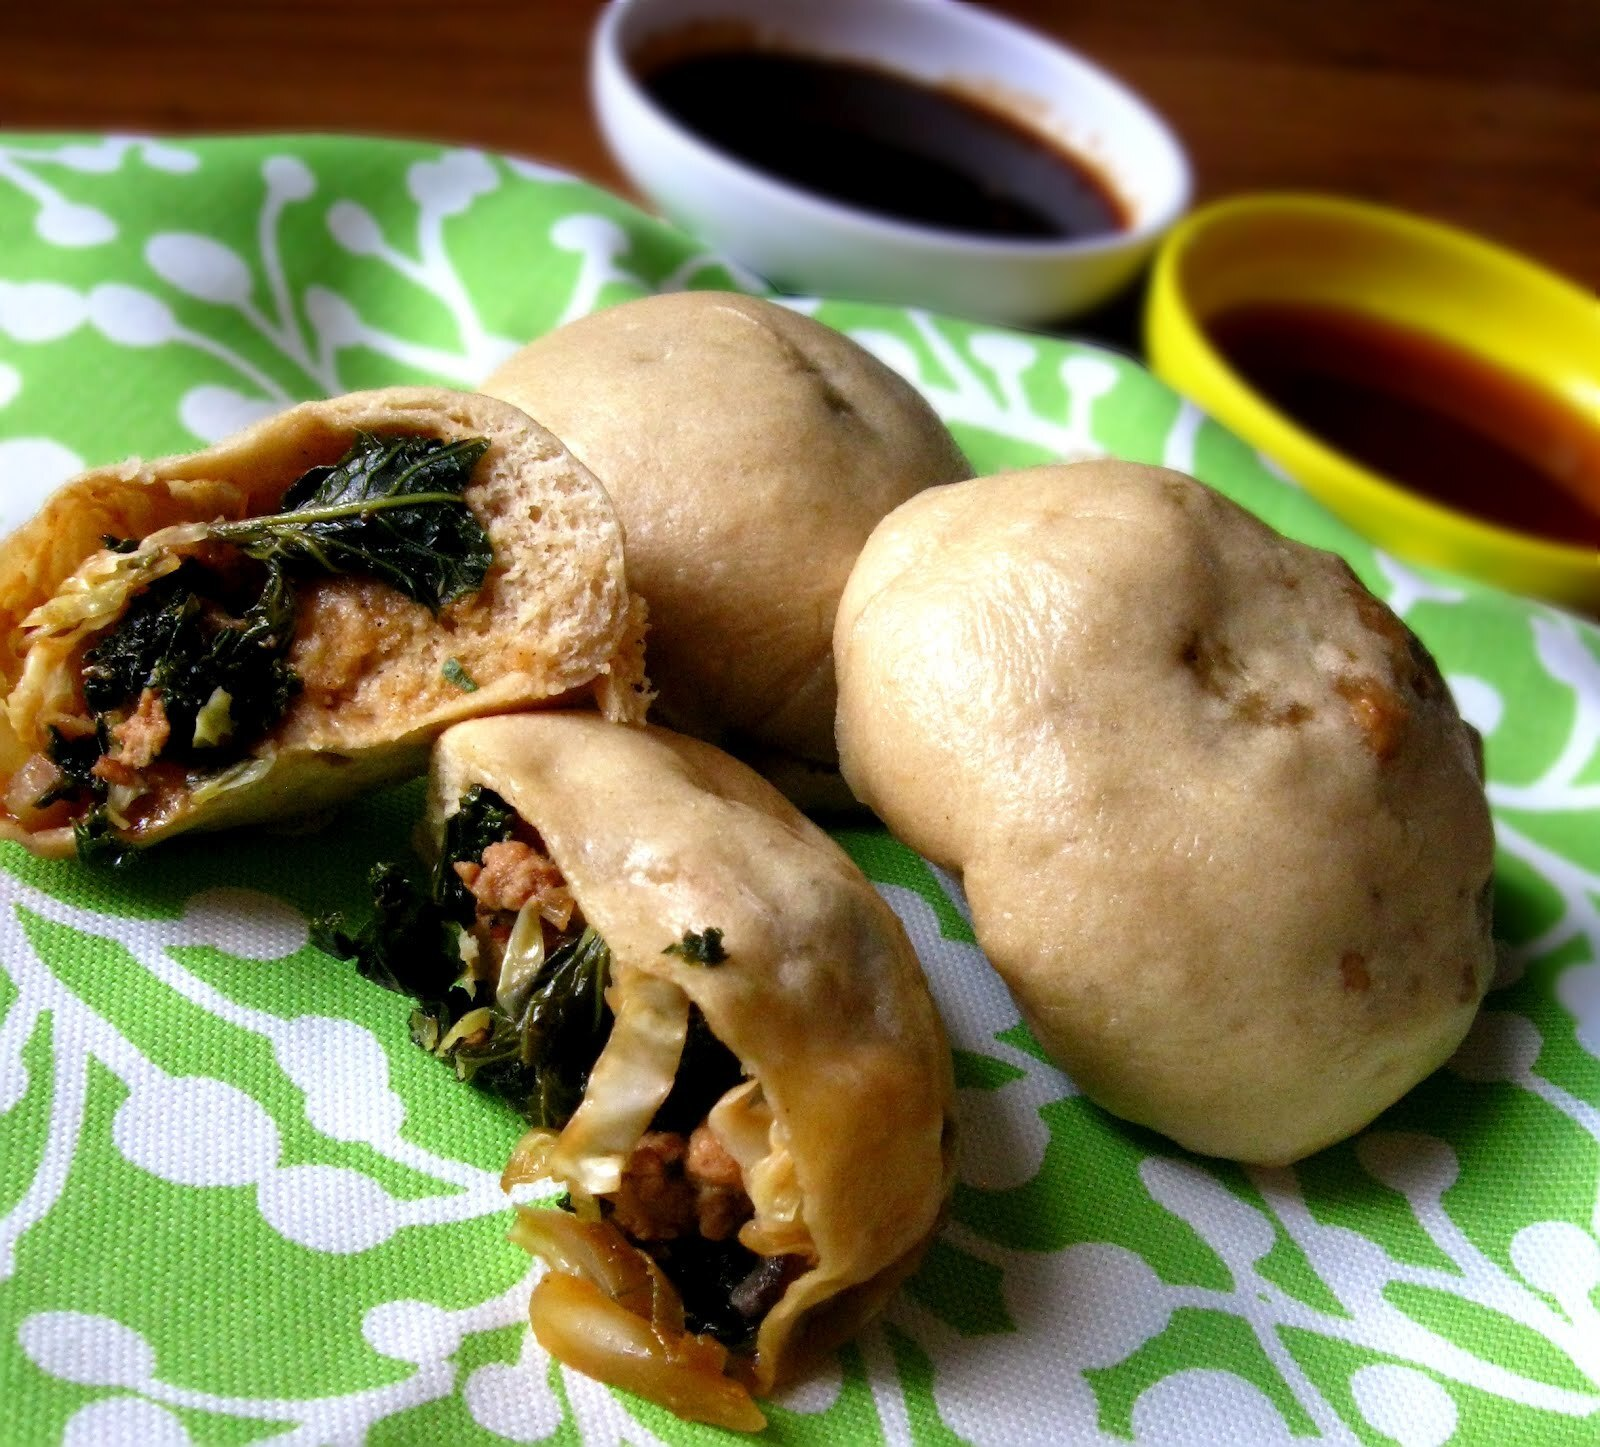 Greened Asian Steamed Buns with two dipping sauces